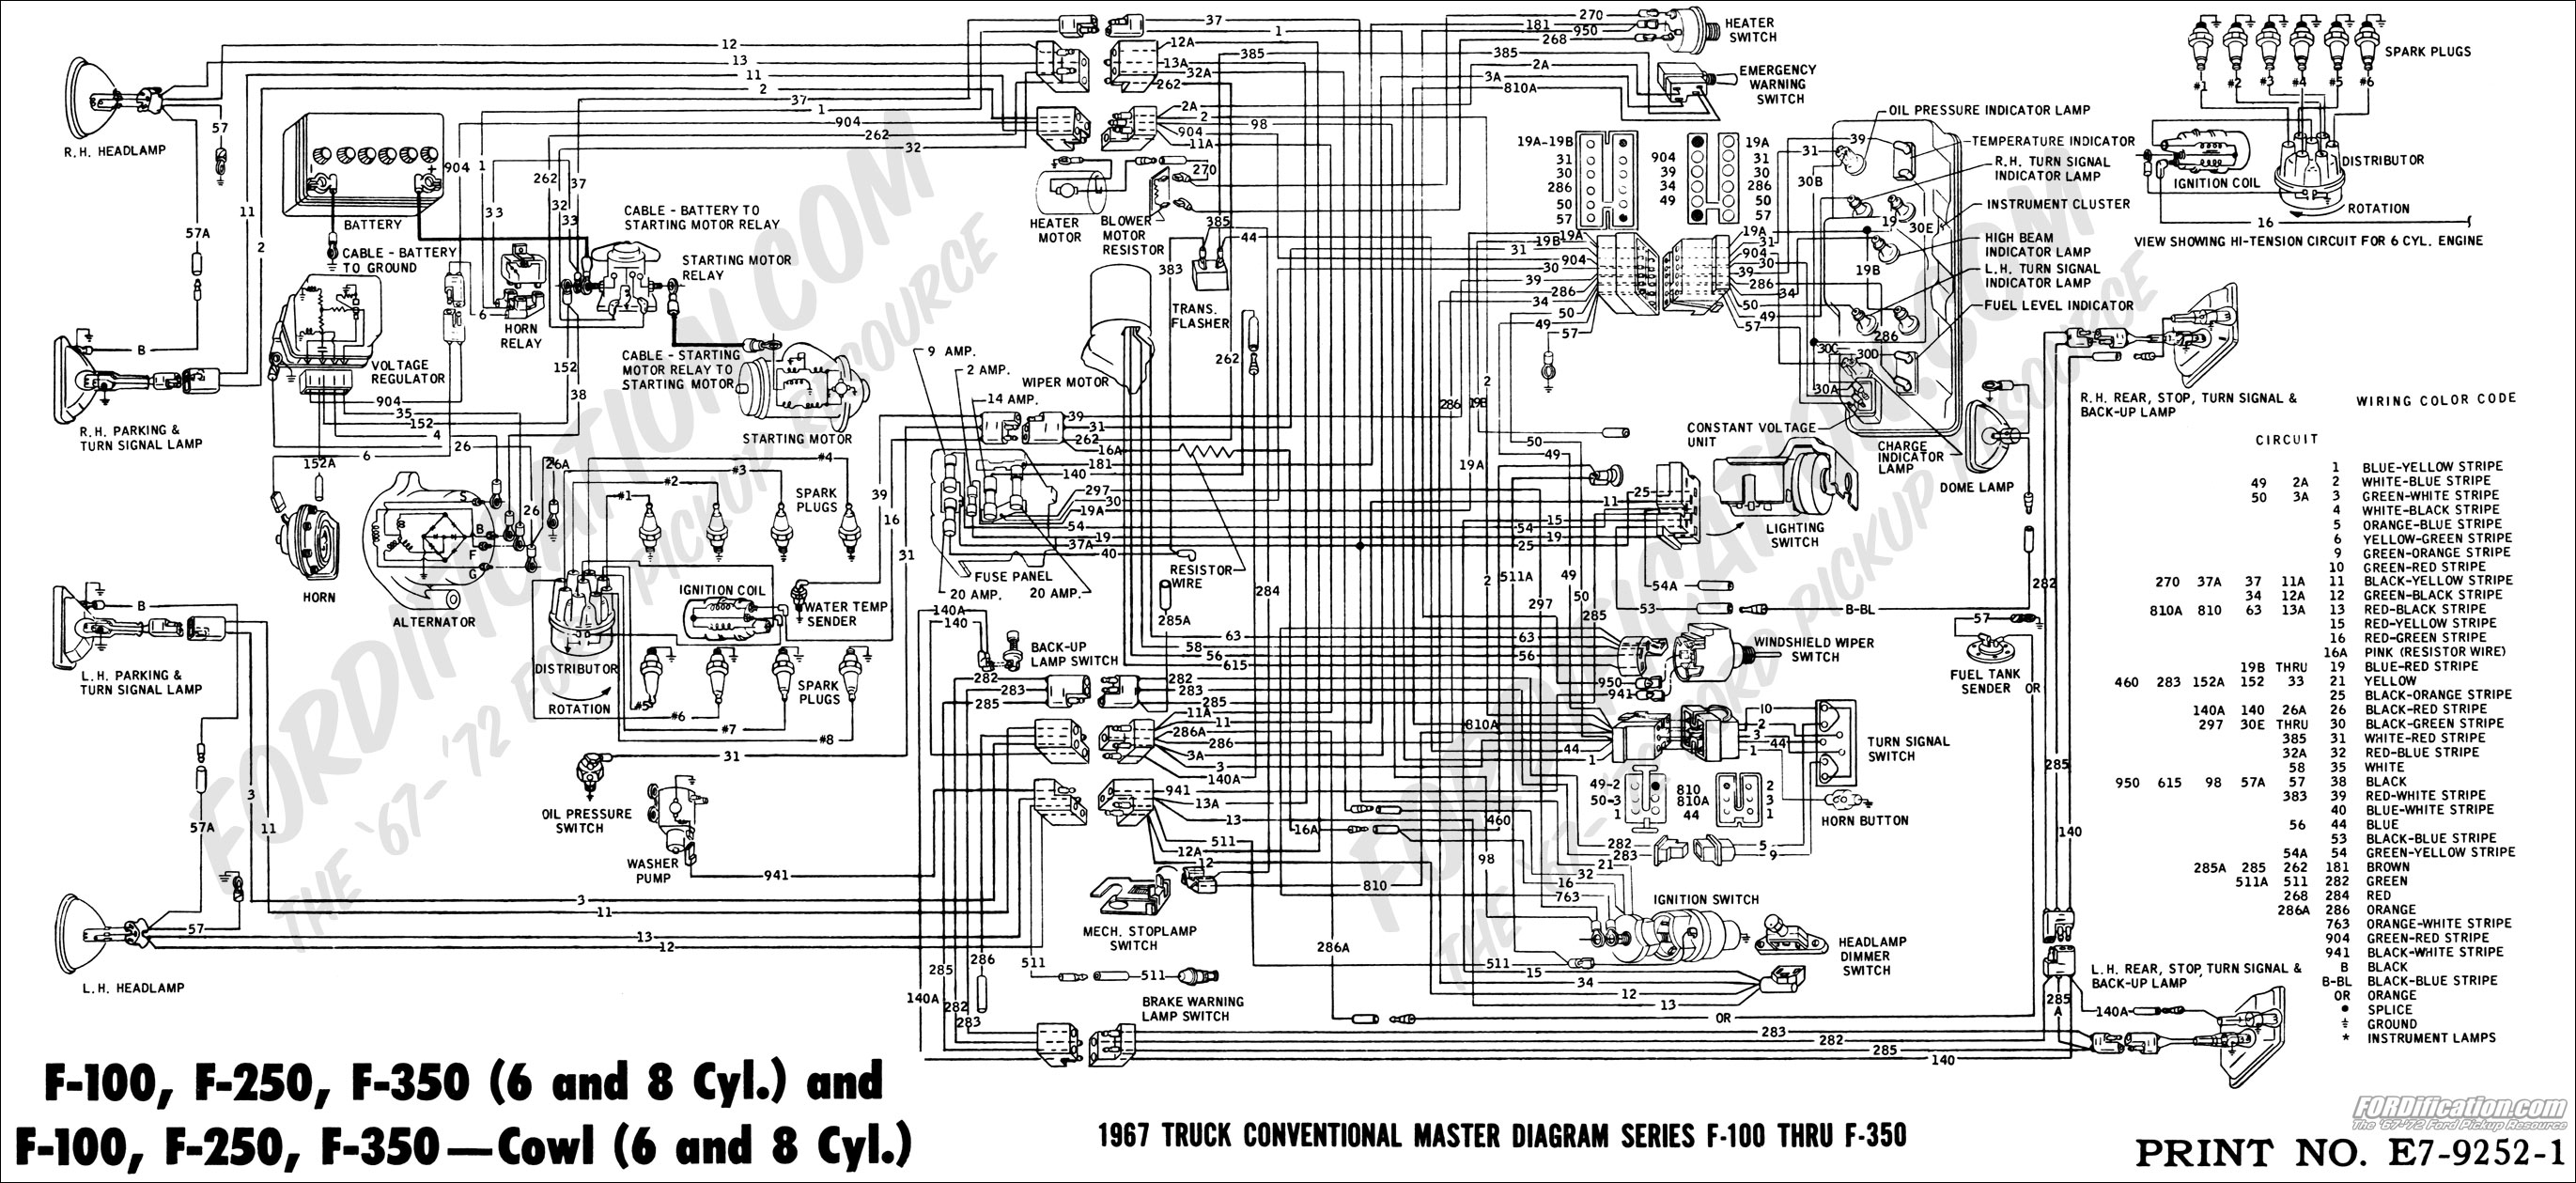 67masterdiagram diagram ford f150 wiring wiring diagrams instruction 2006 ford f150 wiring diagram at suagrazia.org